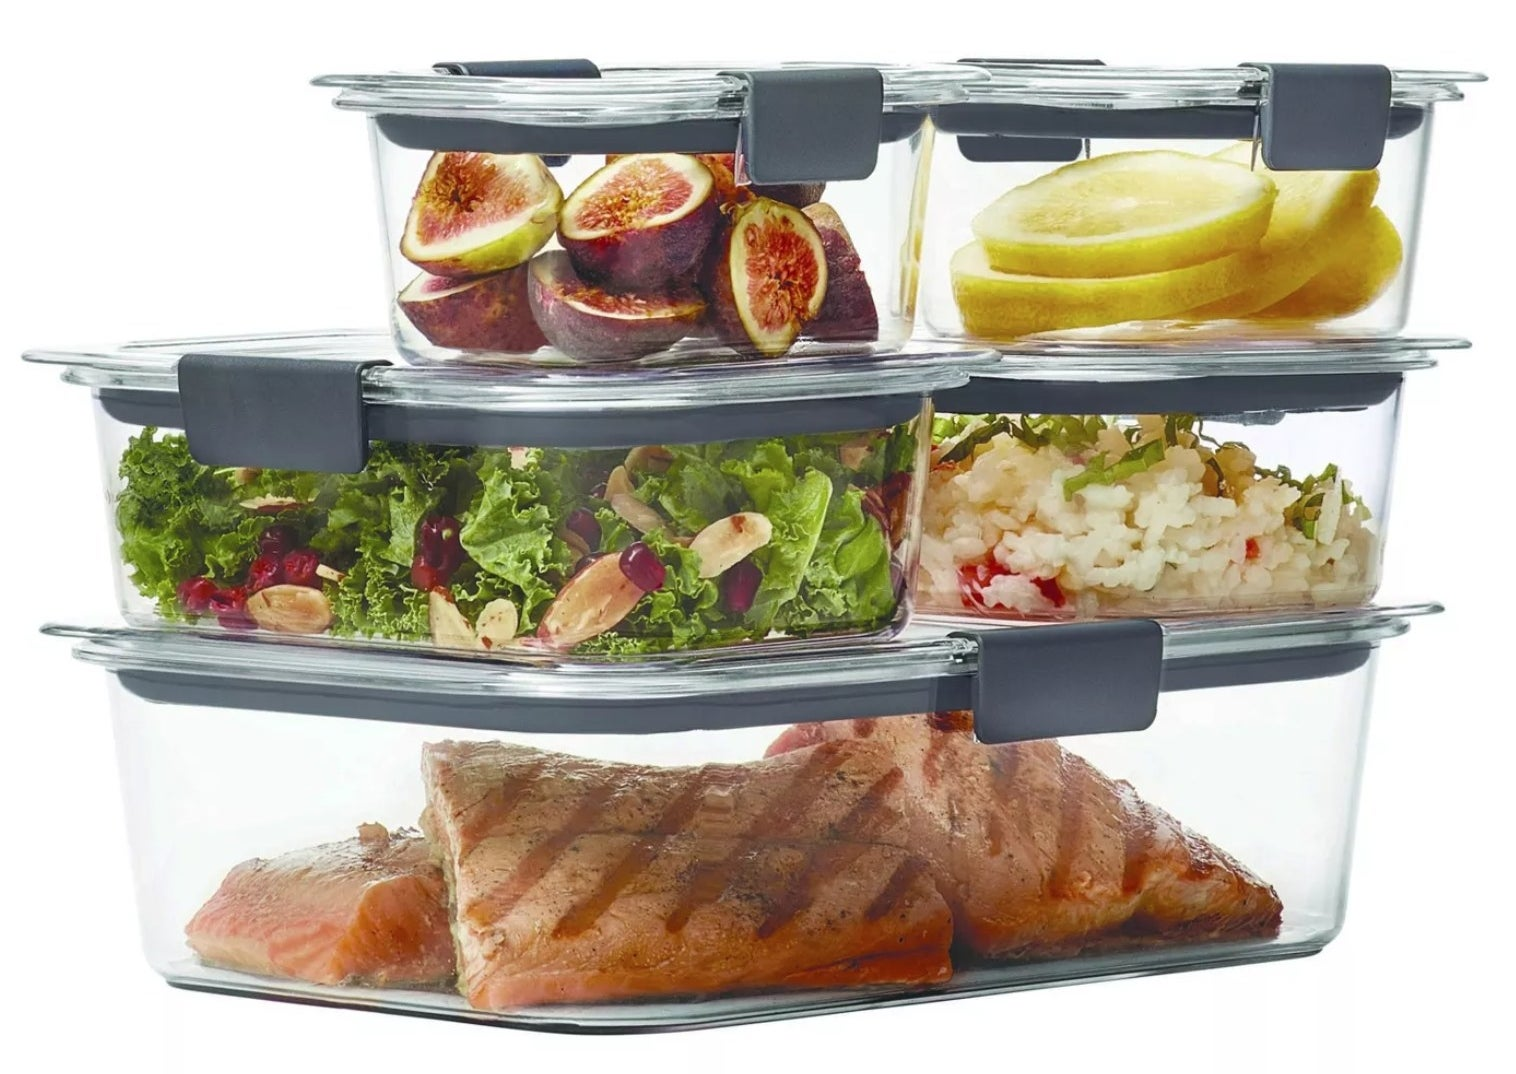 the five containers stacked on top of each other with salmon in the big bottom one, salad and rice in the two medium ones on top of the bottom one, and lemon and dates in the two small ones on top of the medium ones